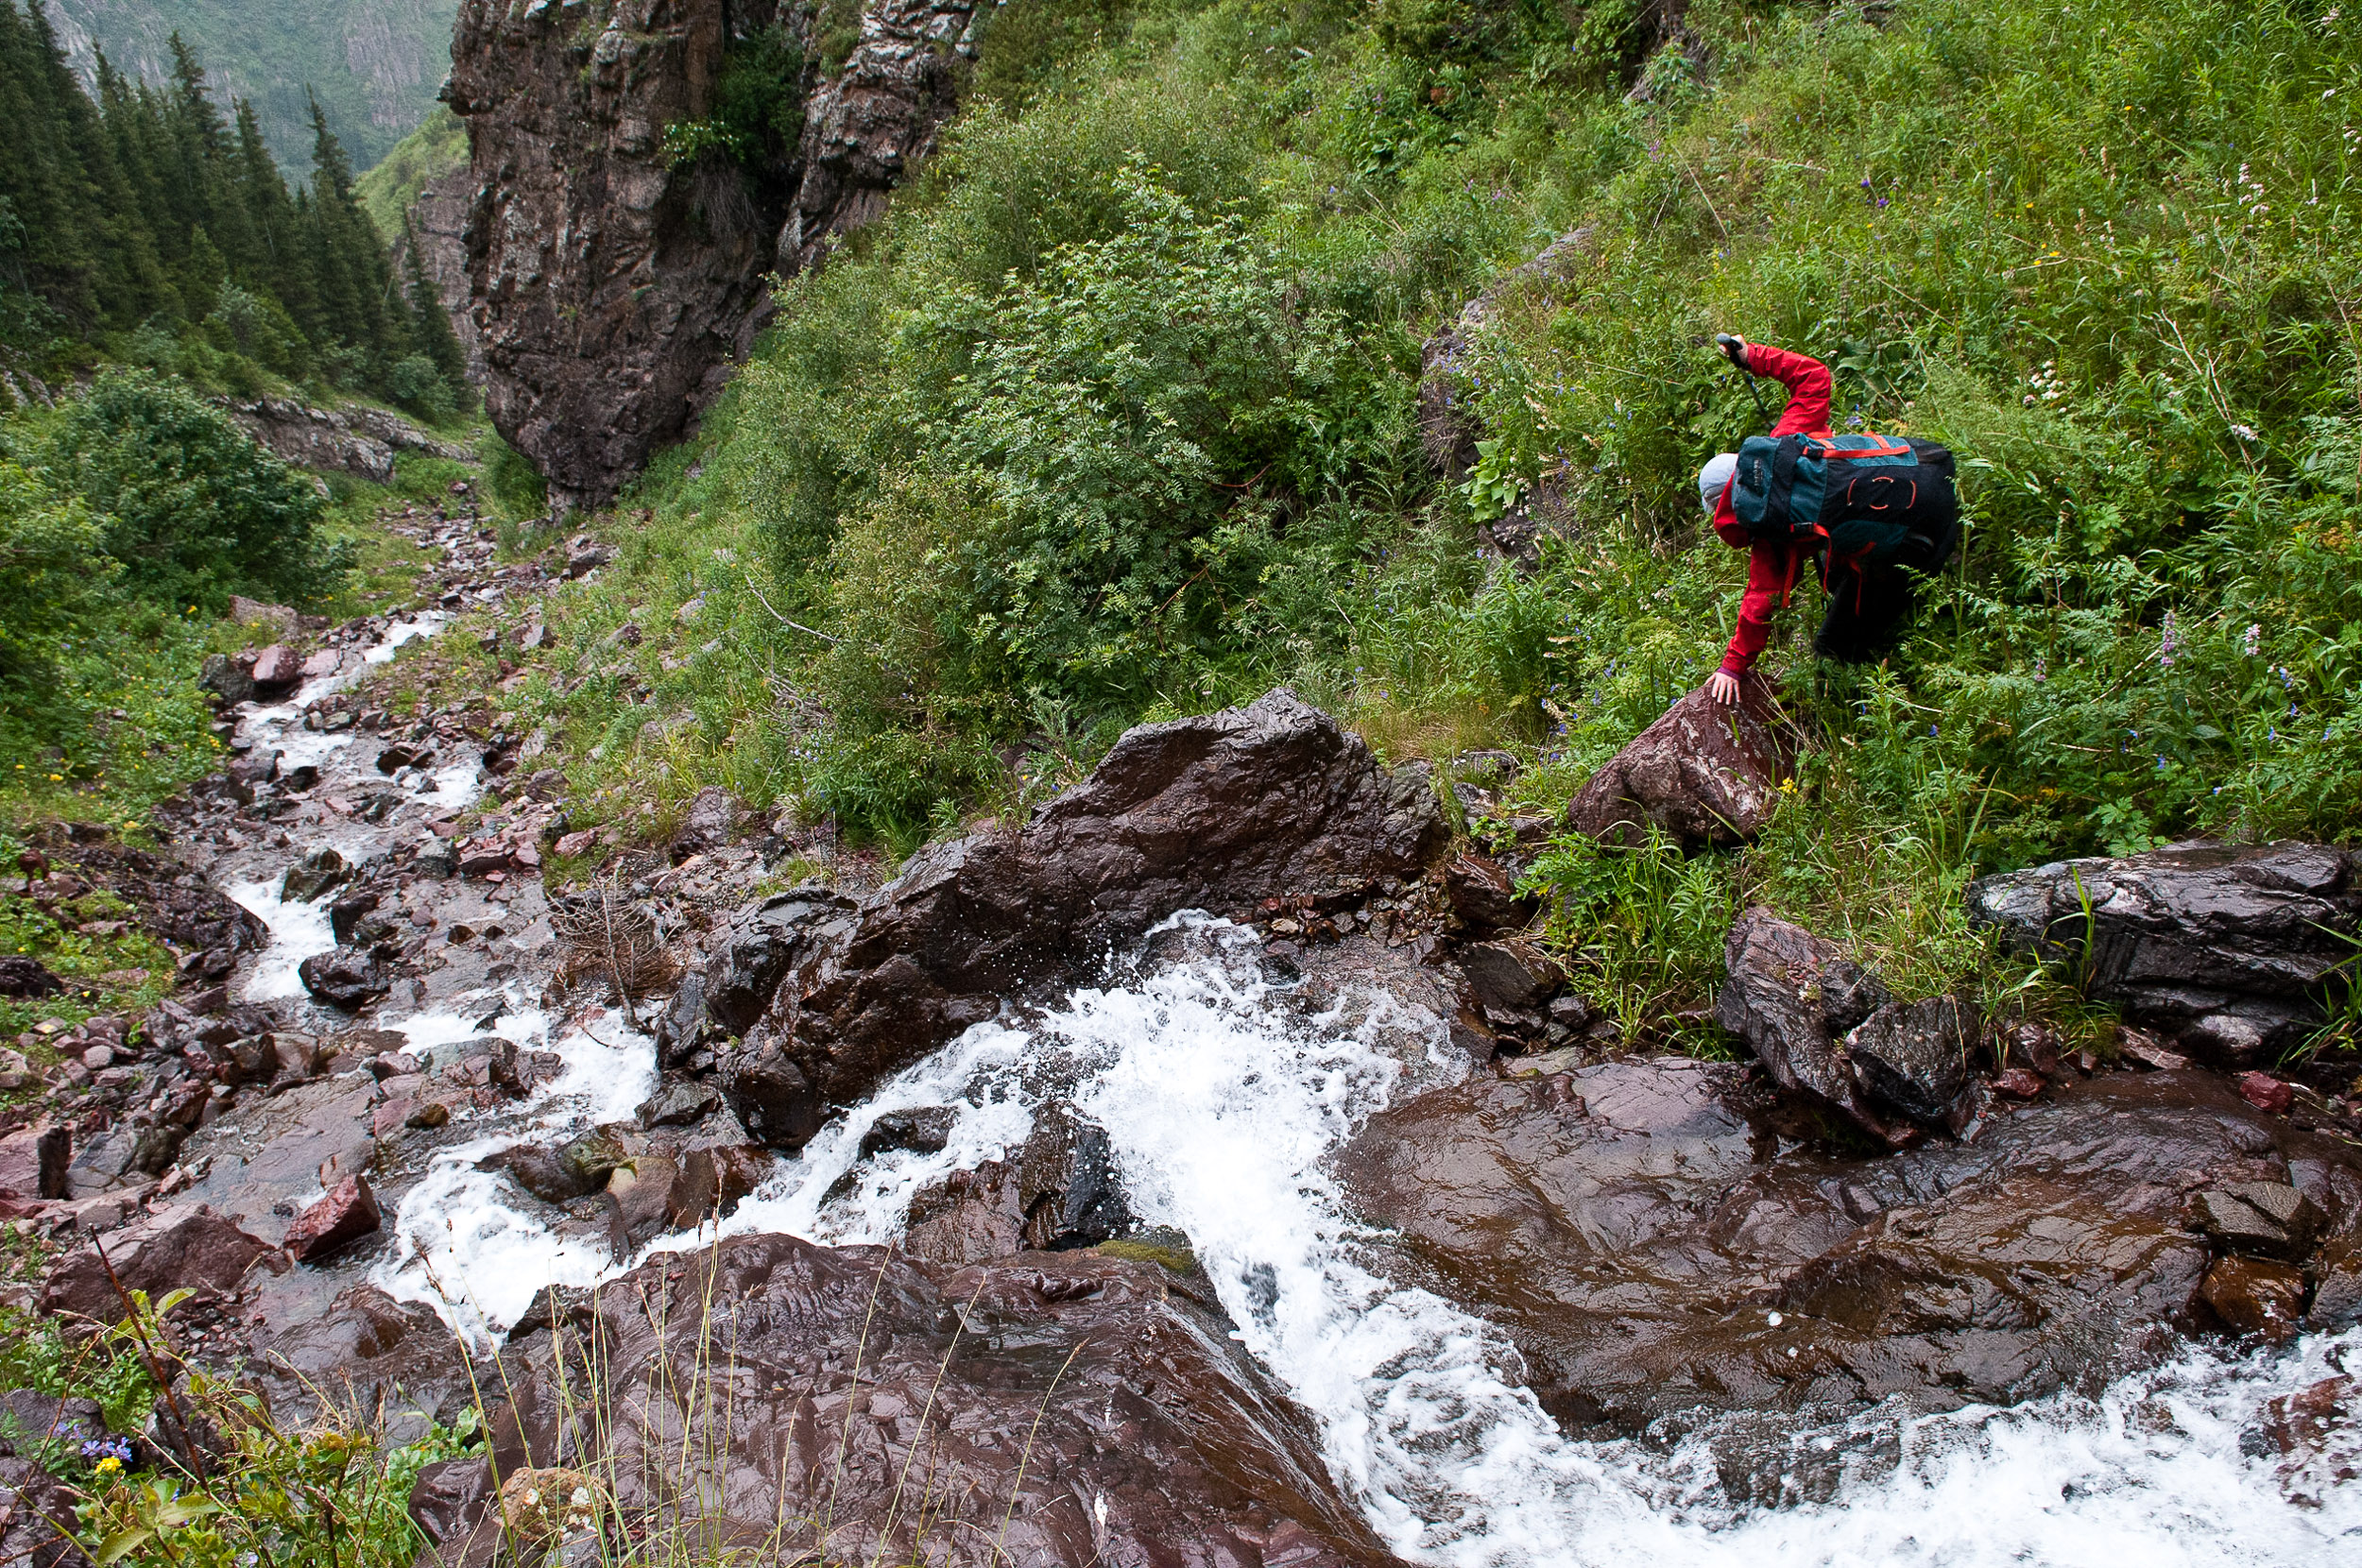 Jane negotiating steep terrain while descending from the pass, Kyrgyzstan.